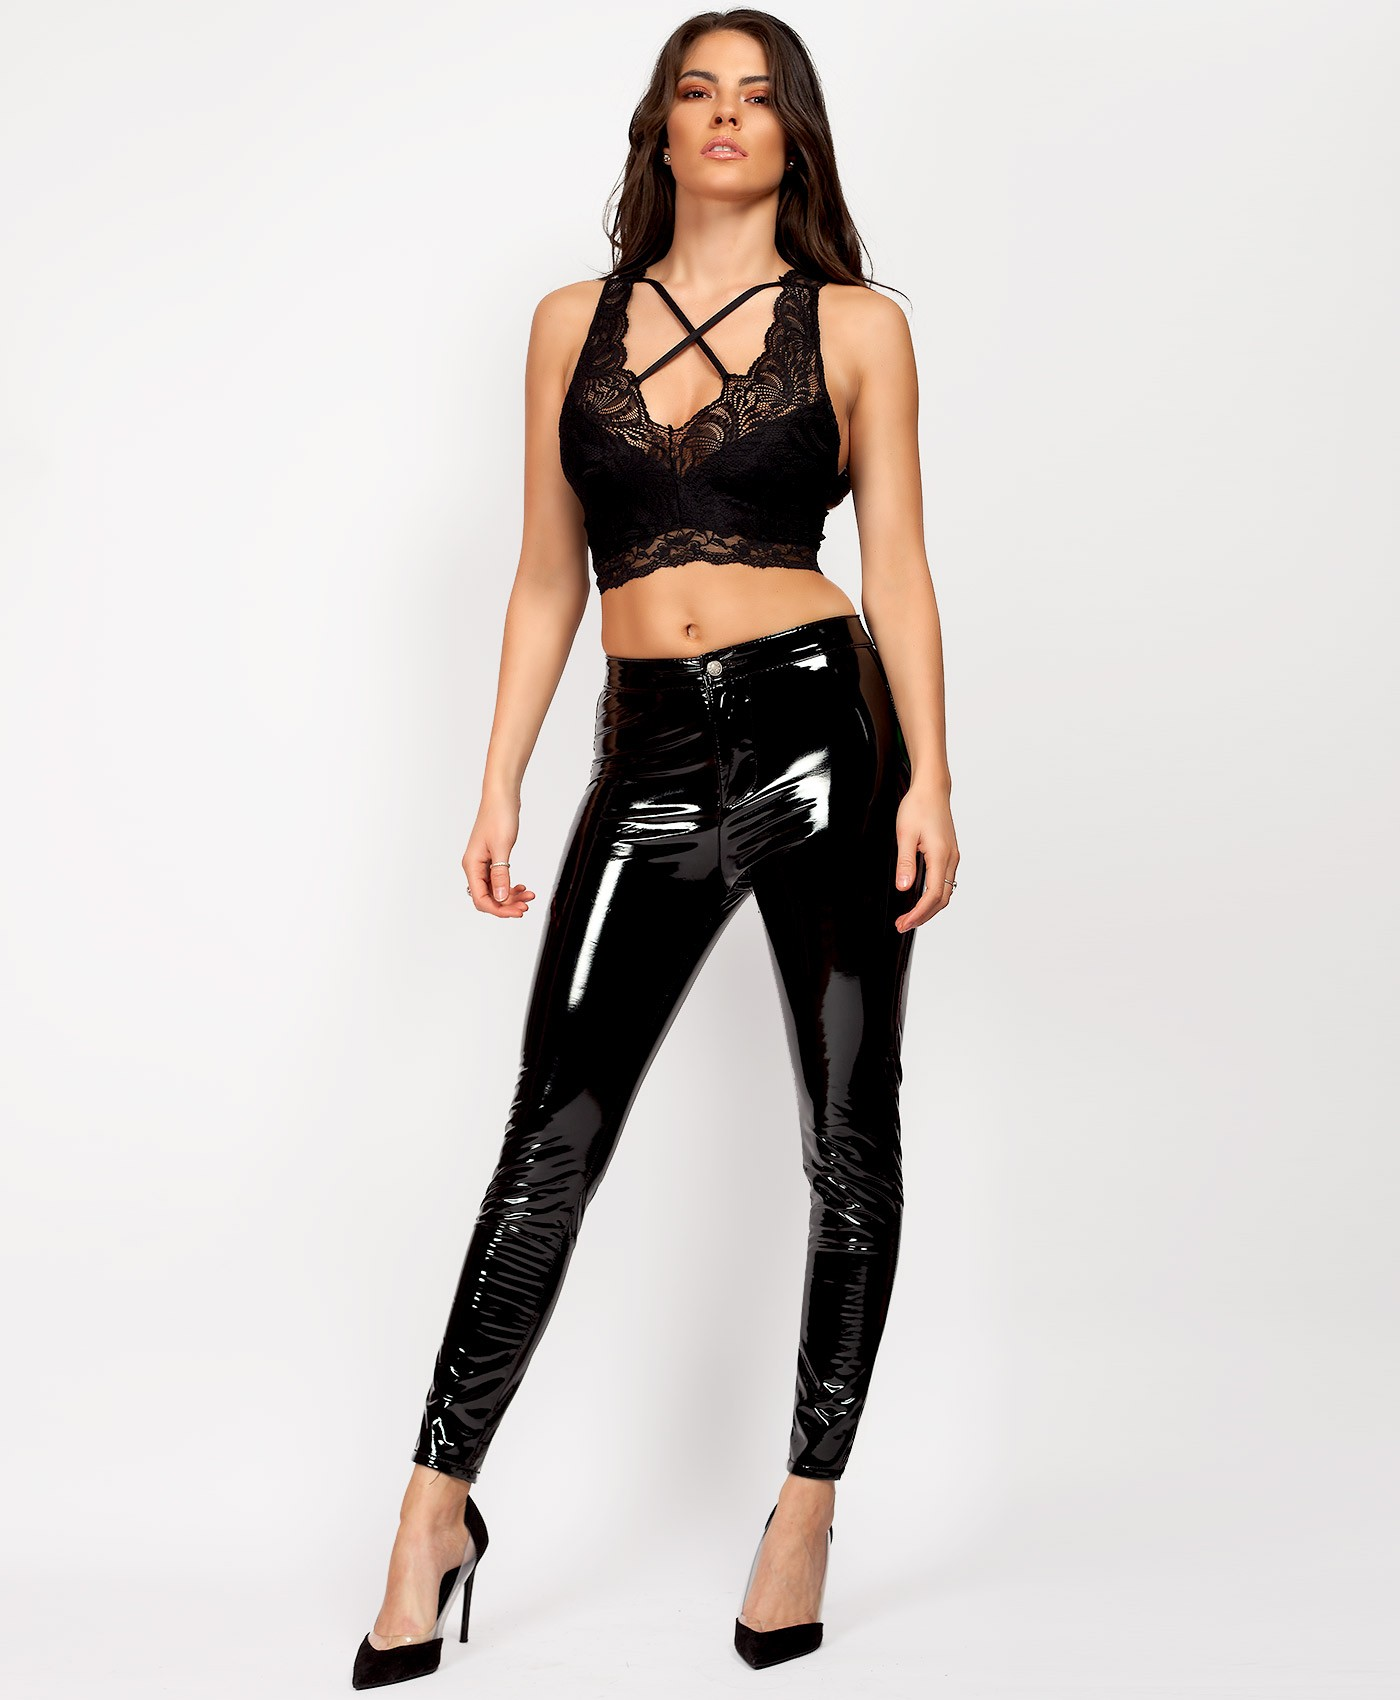 Black High Shine Wet Look Vinyl Trousers